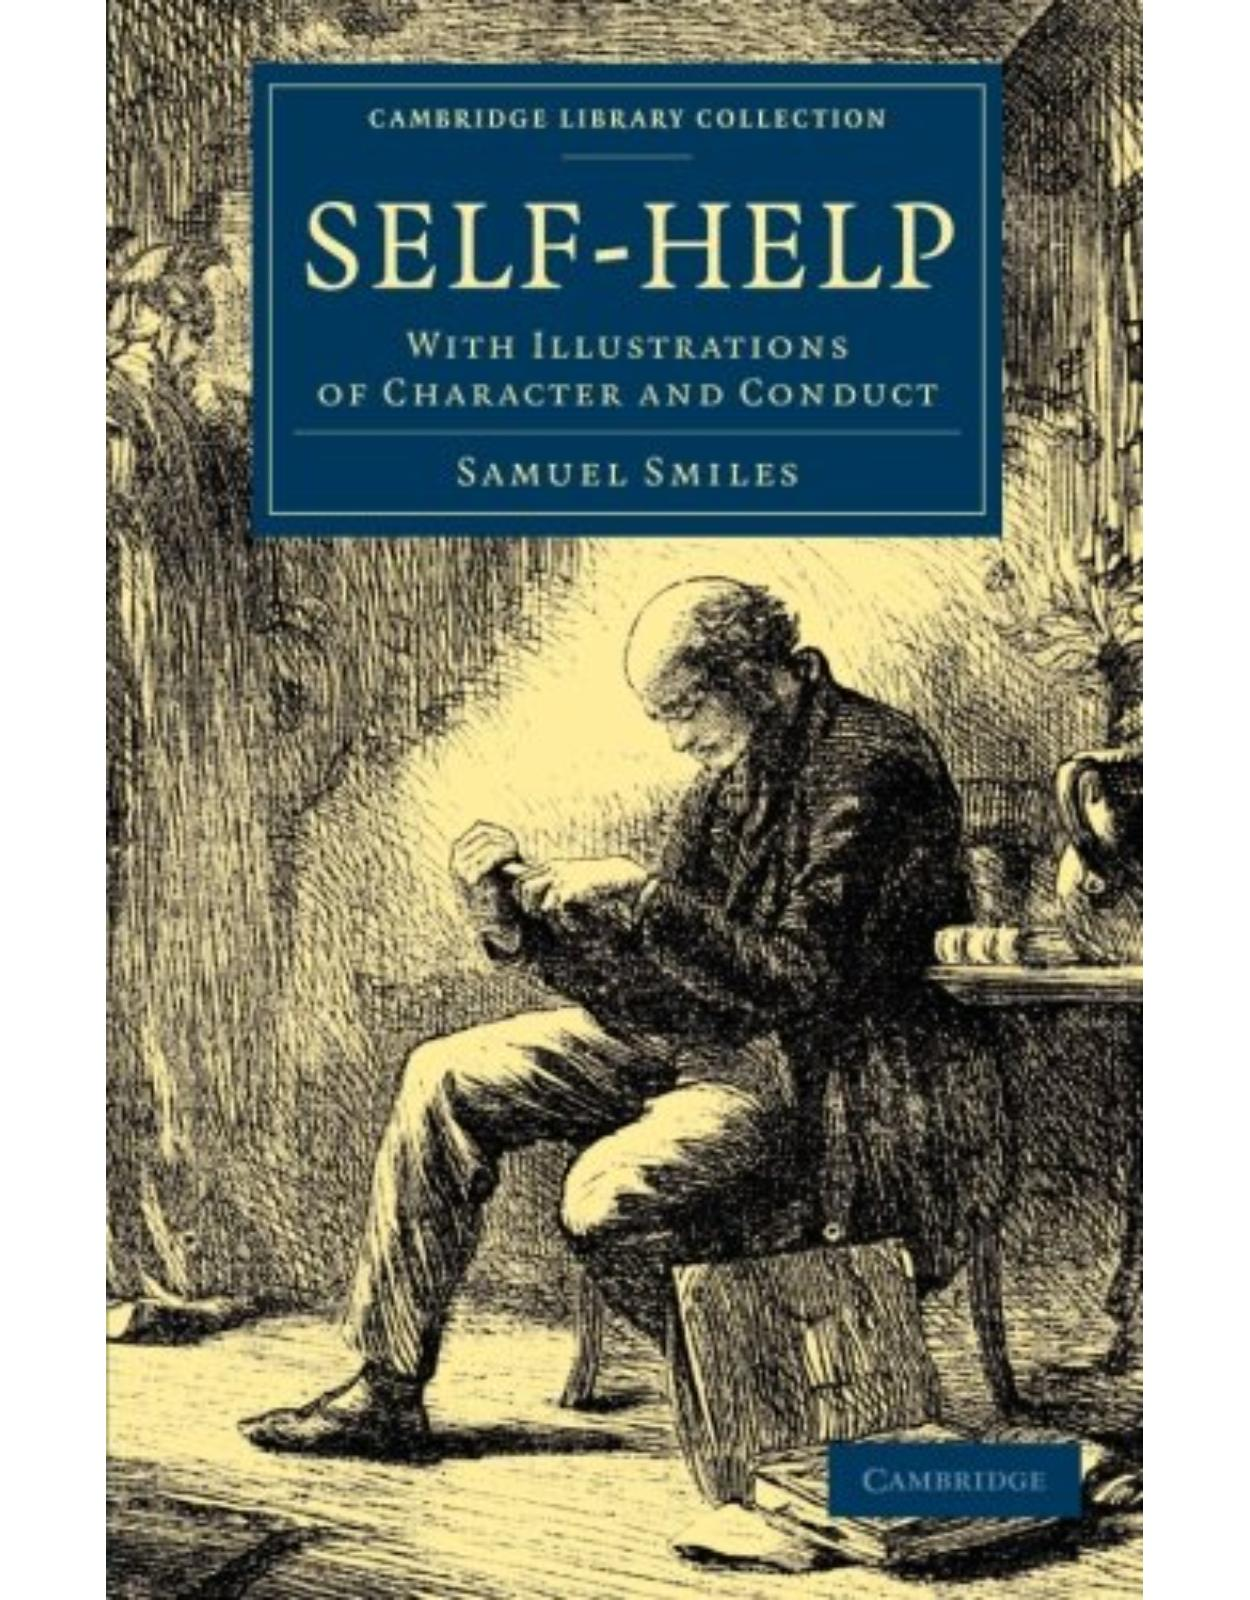 Self-Help: With Illustrations of Character and Conduct (Cambridge Library Collection - British and Irish History, 19th Century)